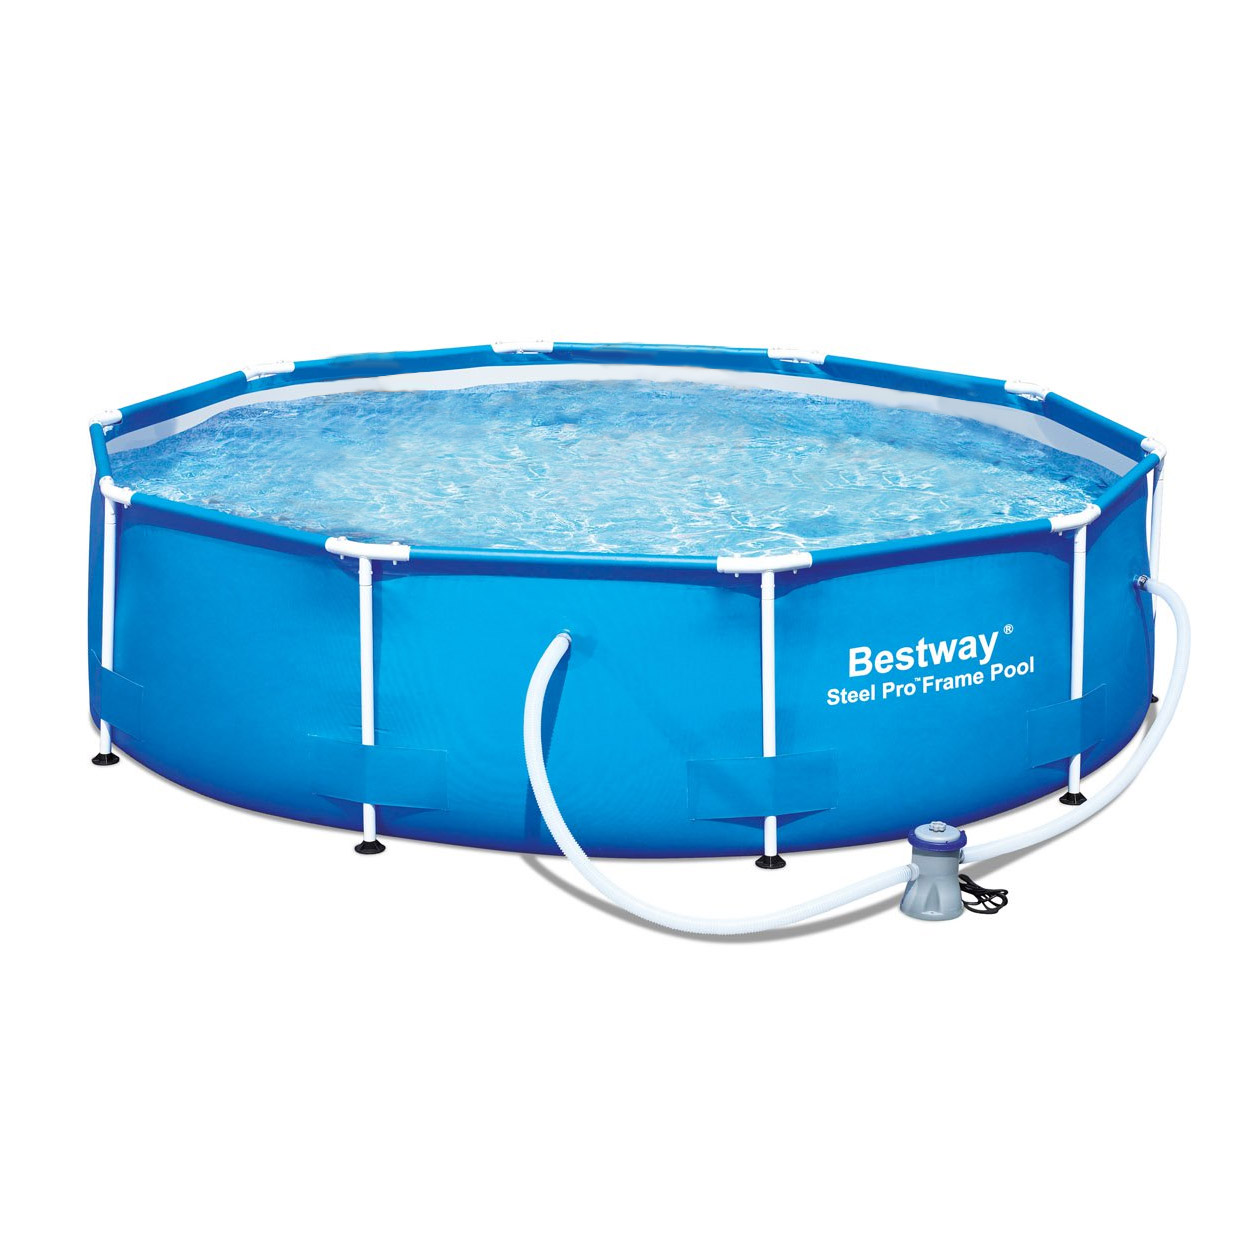 hight resolution of bestway 10 x 30 steel pro frame above ground family swimming pool set